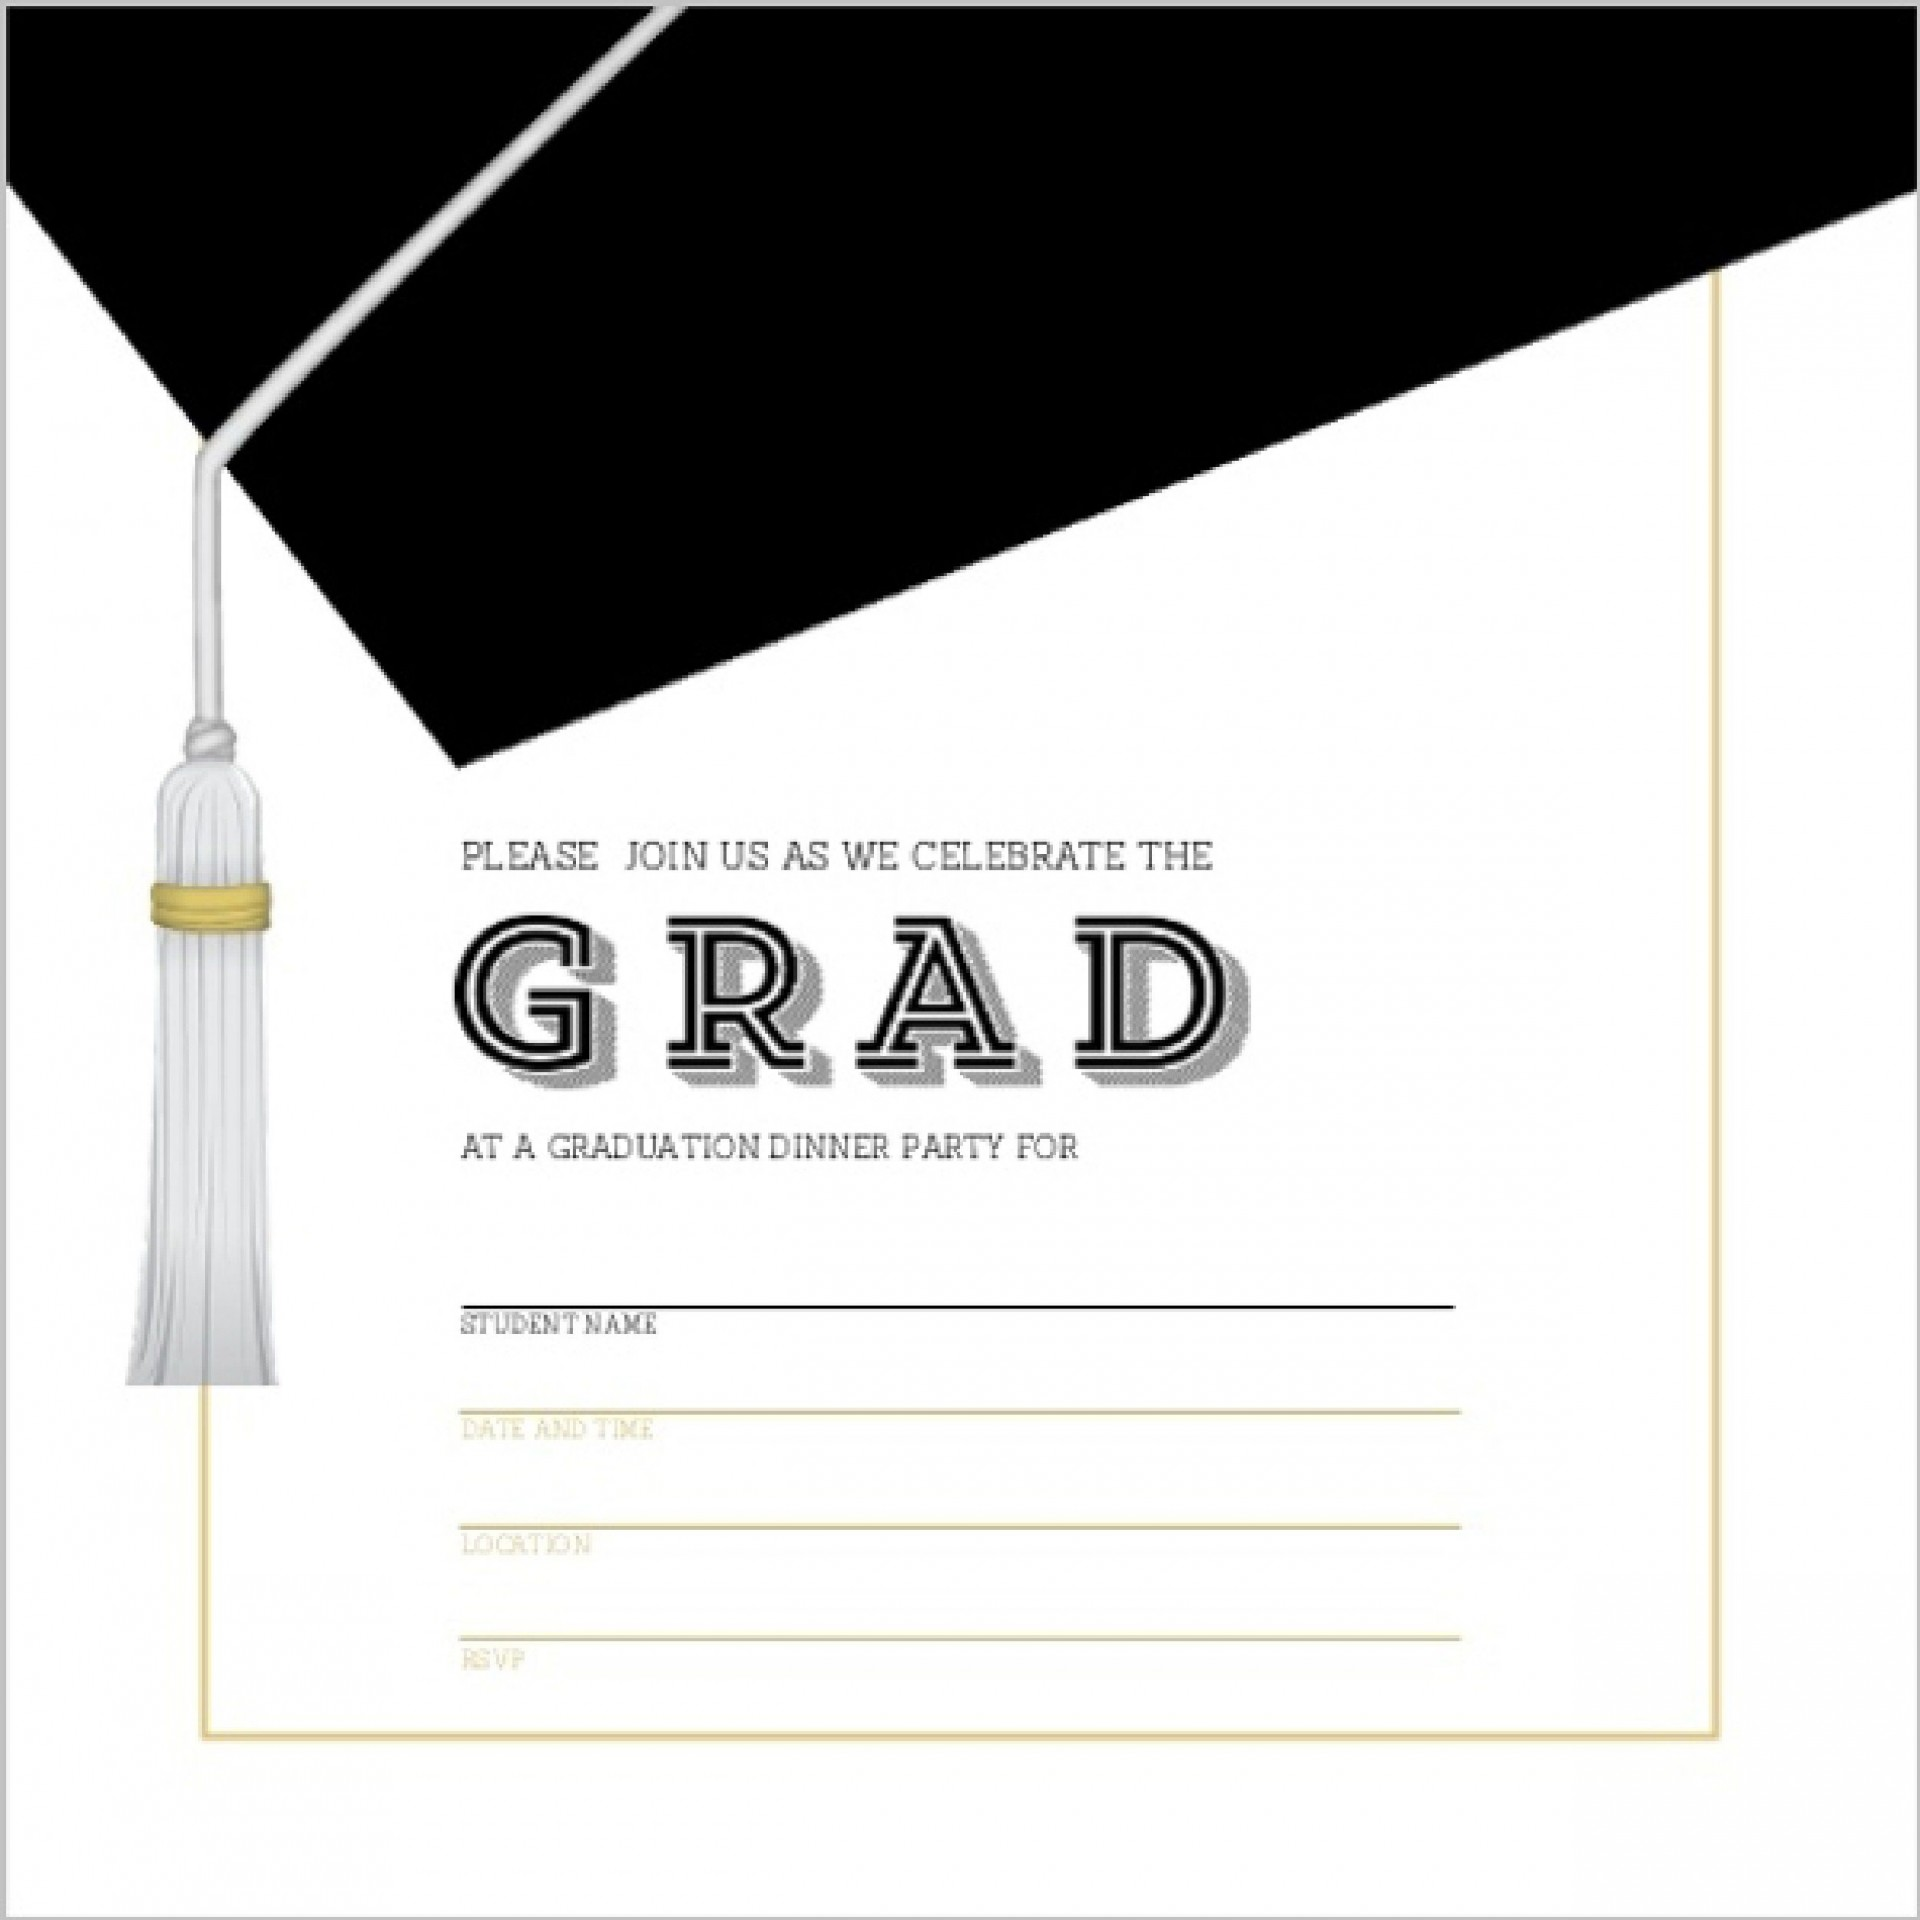 009 Outstanding Free Printable Graduation Invitation Template Example  Party For Word1920